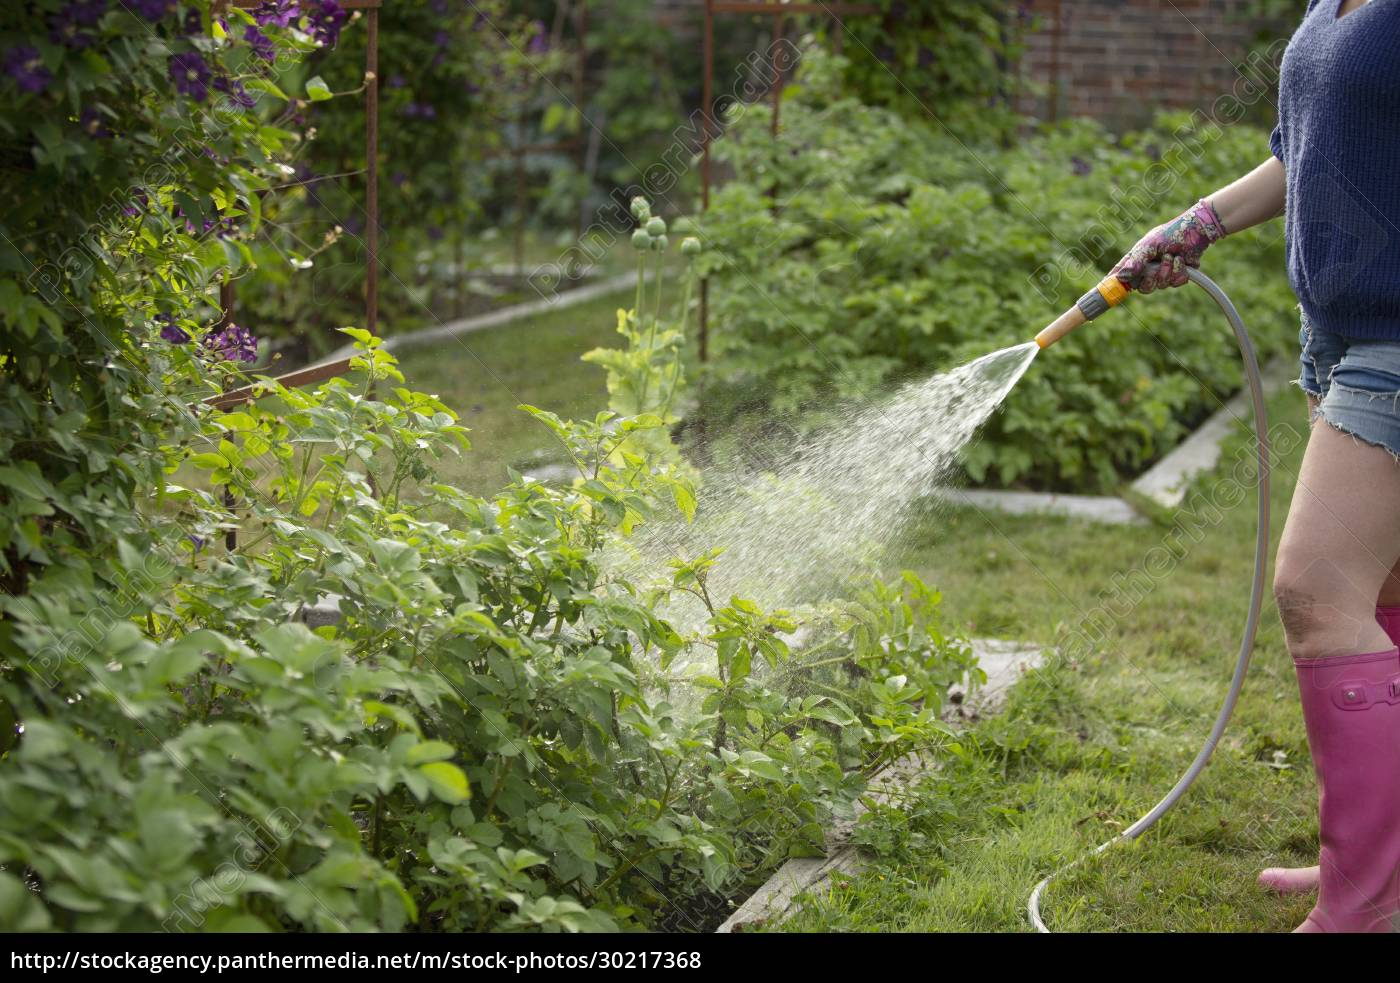 woman, with, hose, watering, vegetable, plants - 30217368